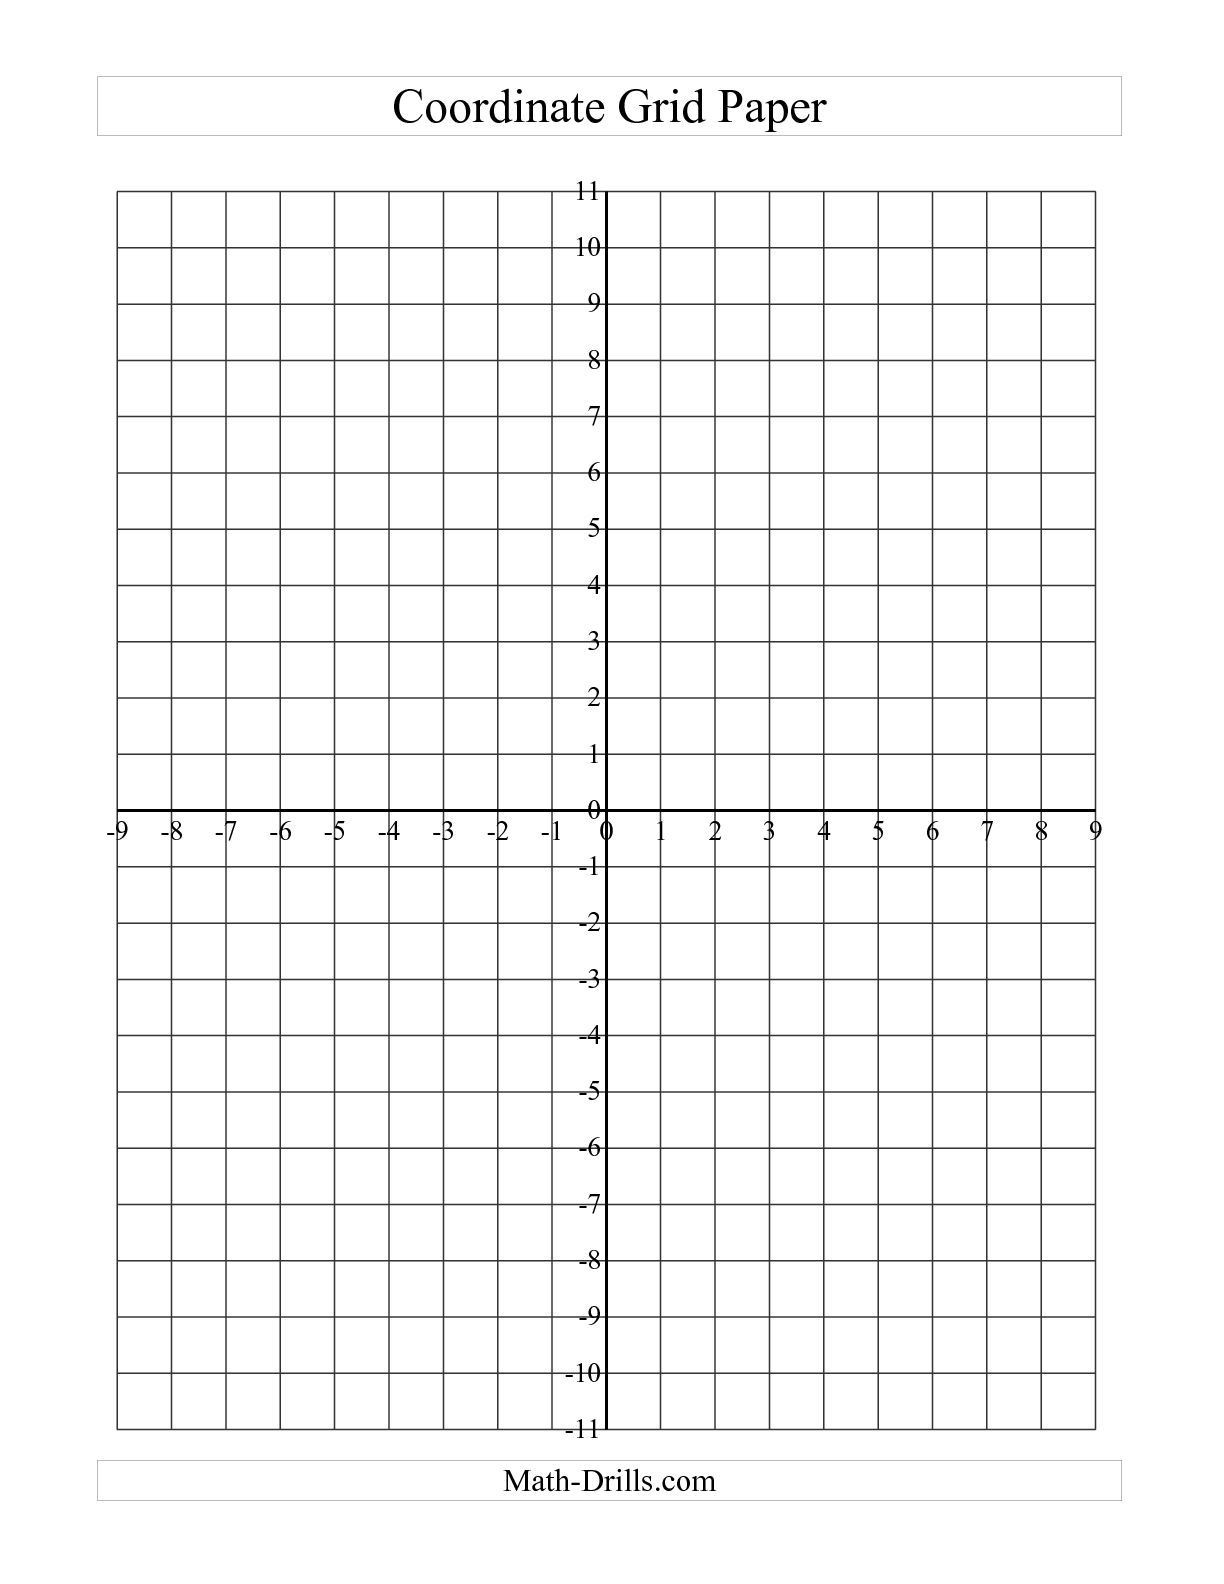 Coordinate Grid Worksheets 6th Grade the Coordinate Grid Paper Grid A Math Worksheet